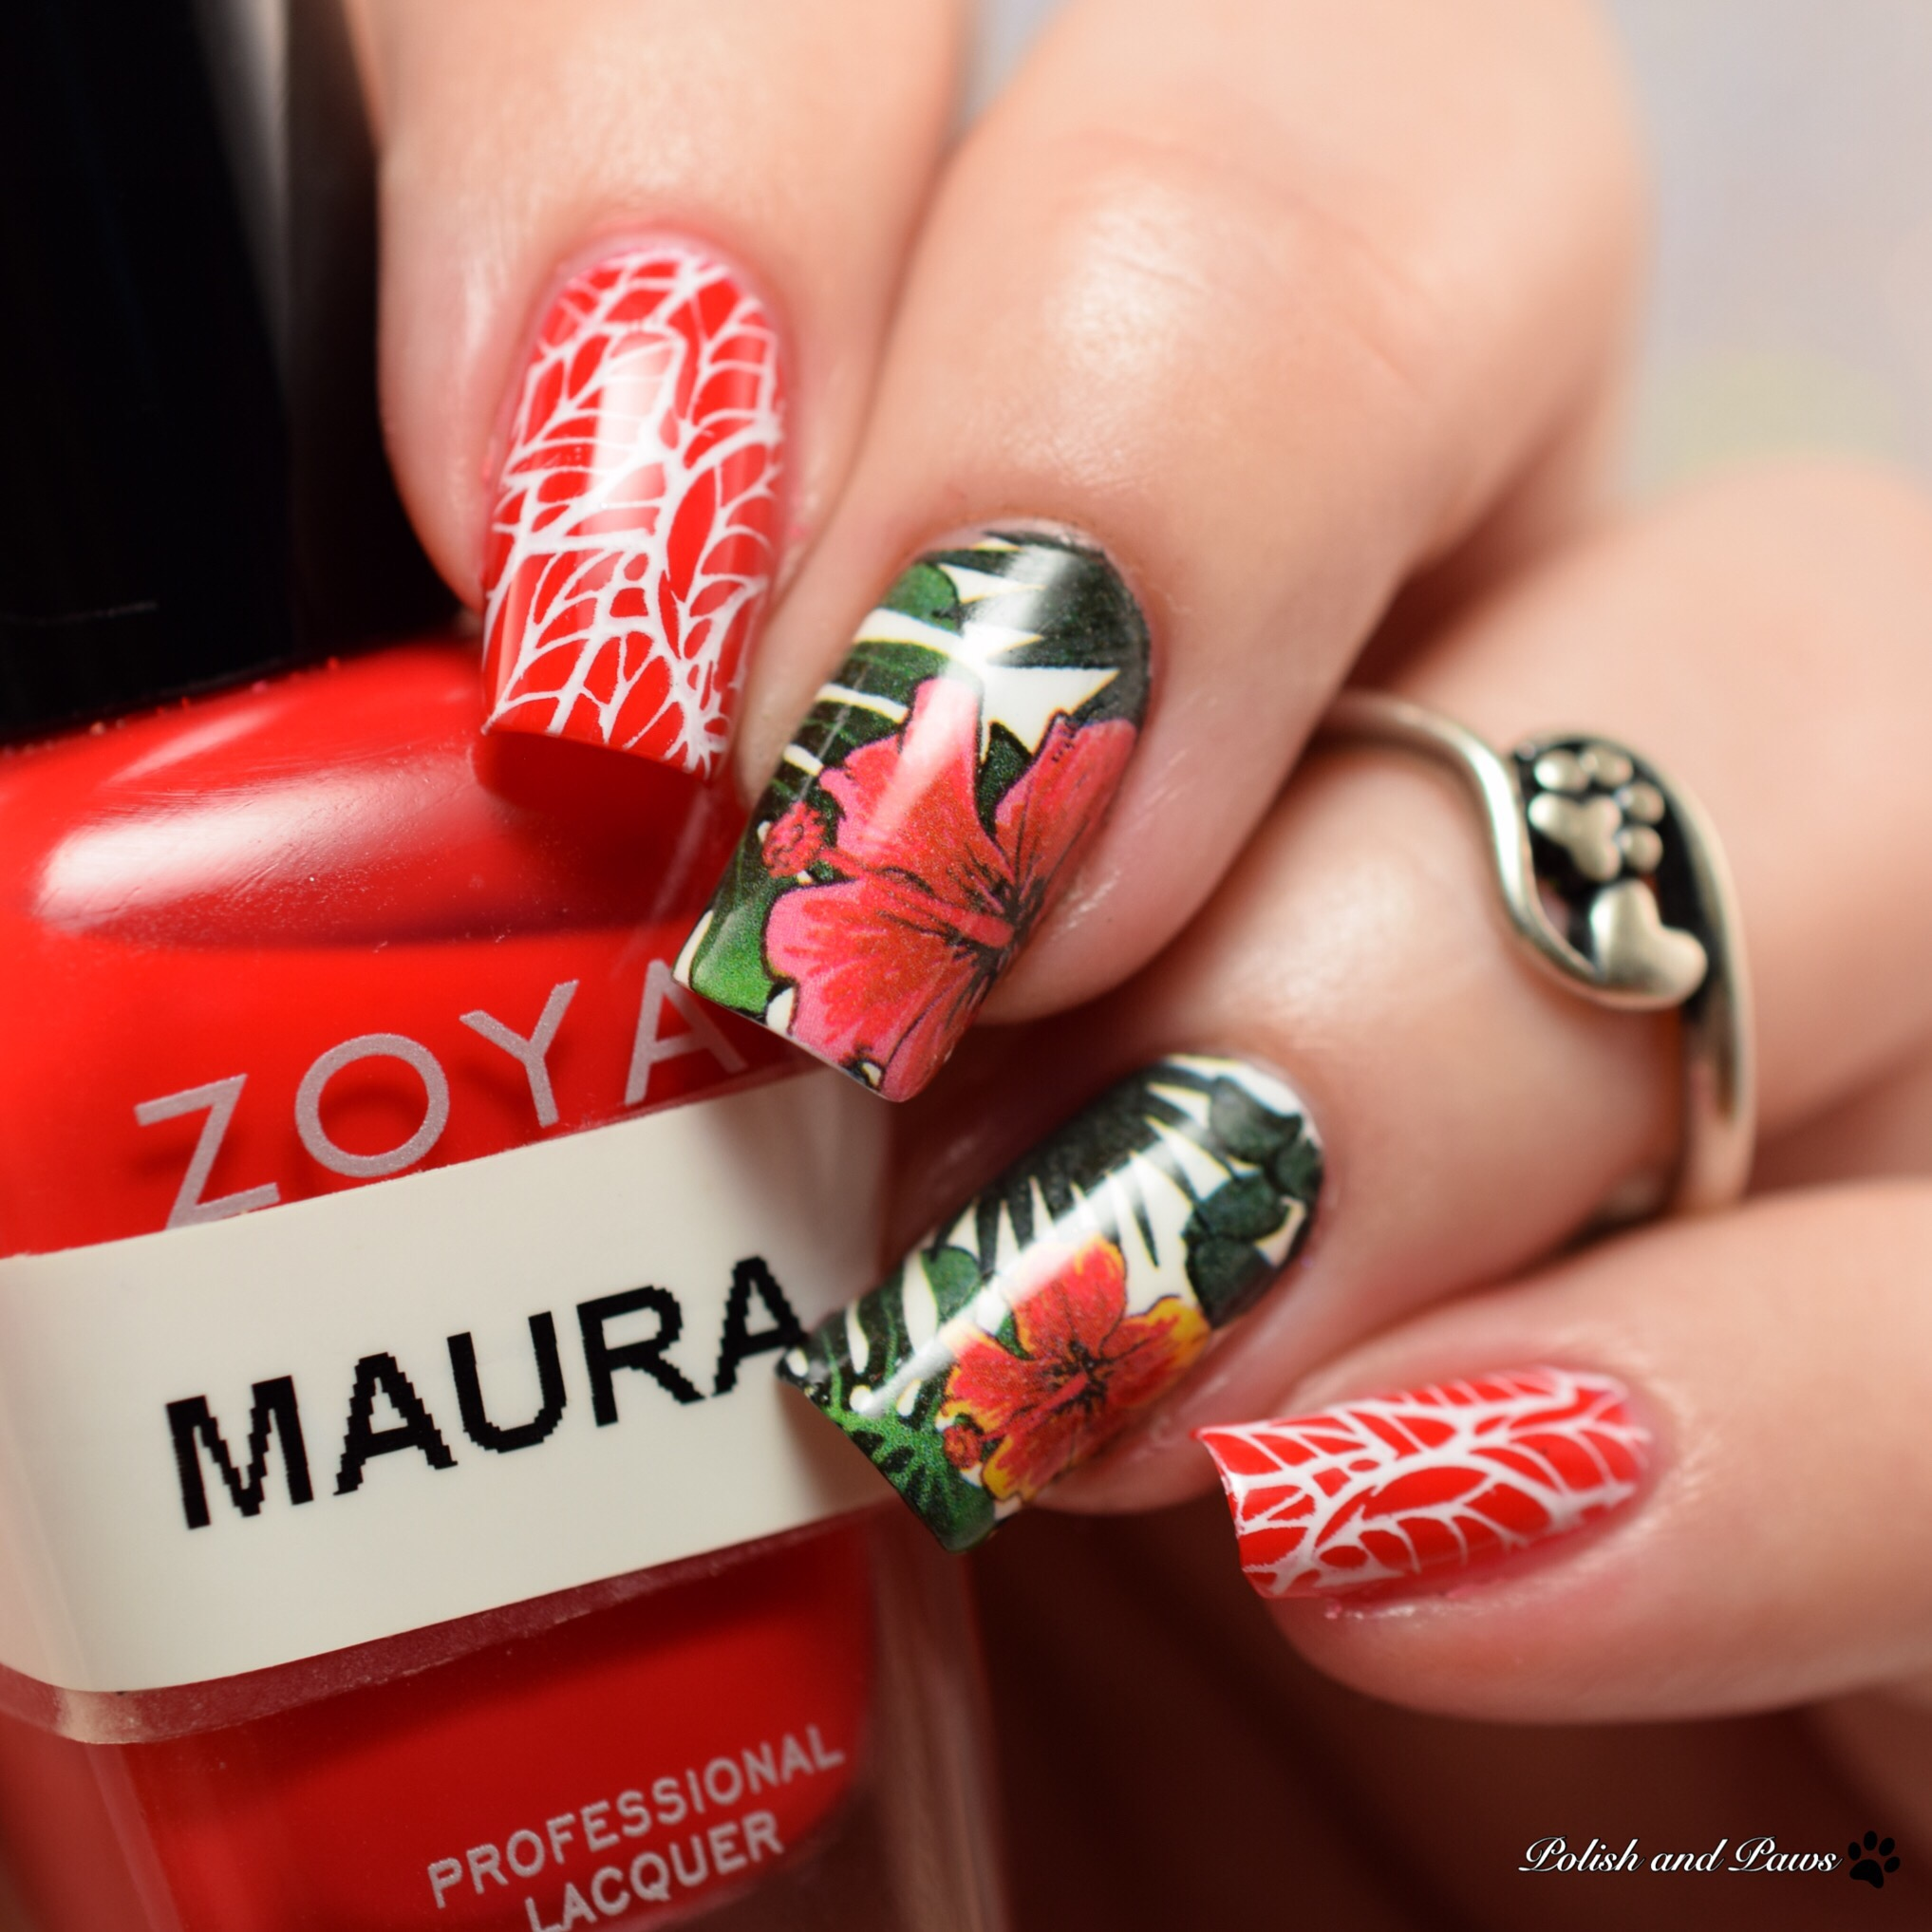 Born Pretty Store BPY32 Water Decals with Zoya Maura